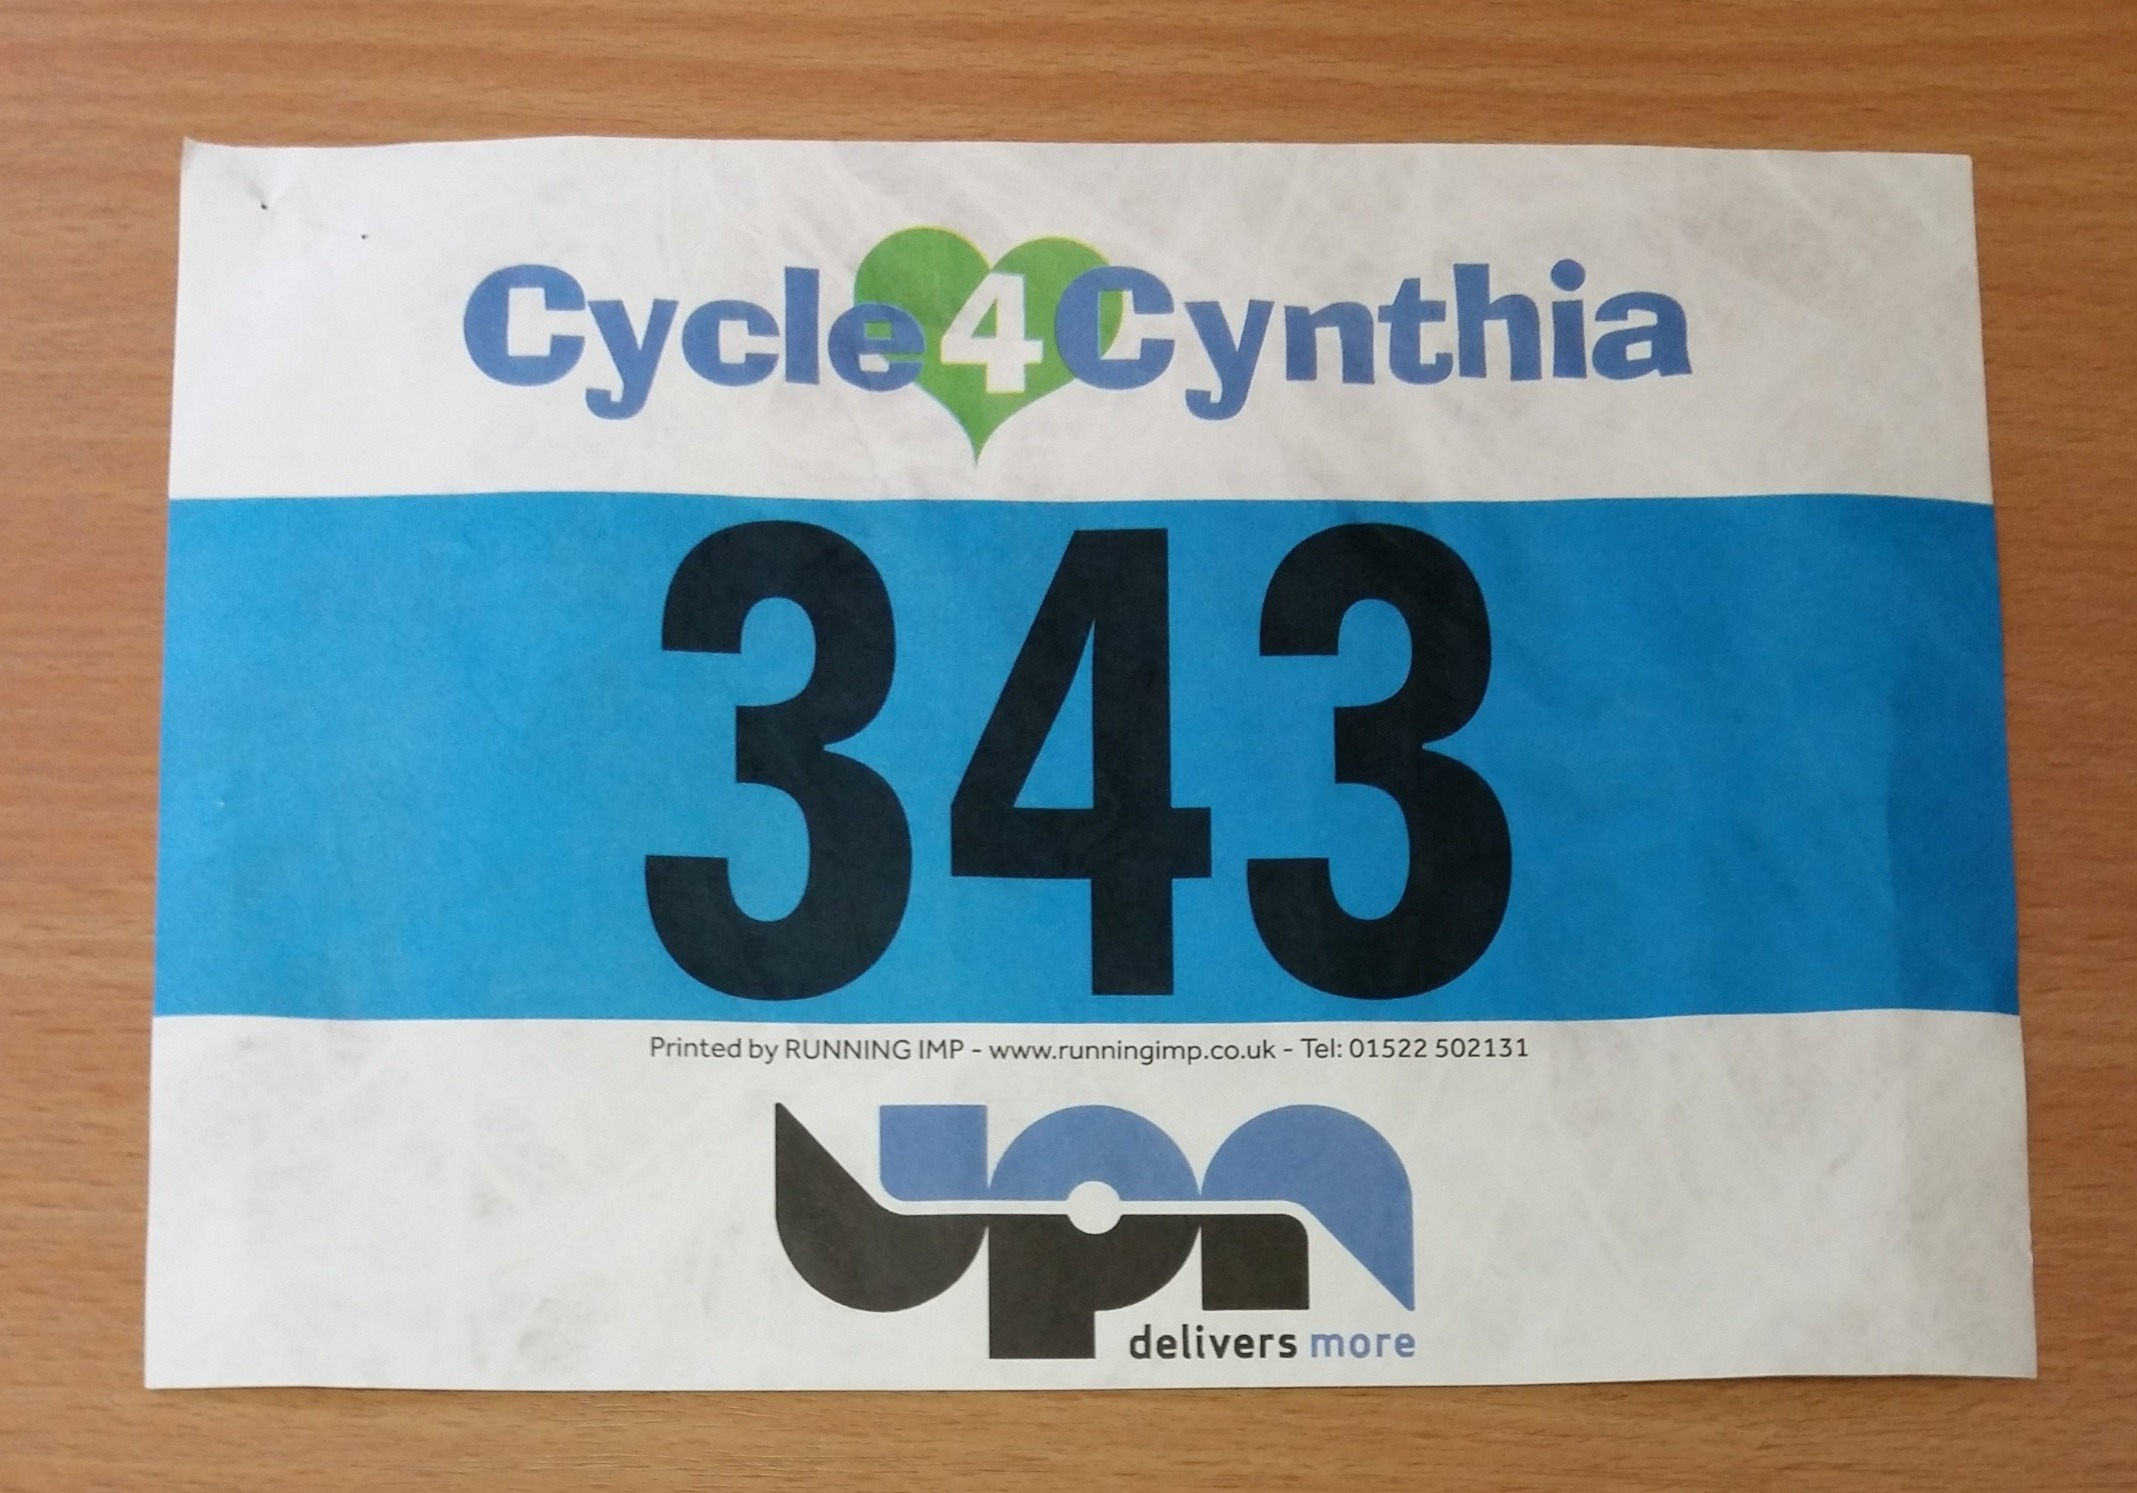 Cycle4Cynthia